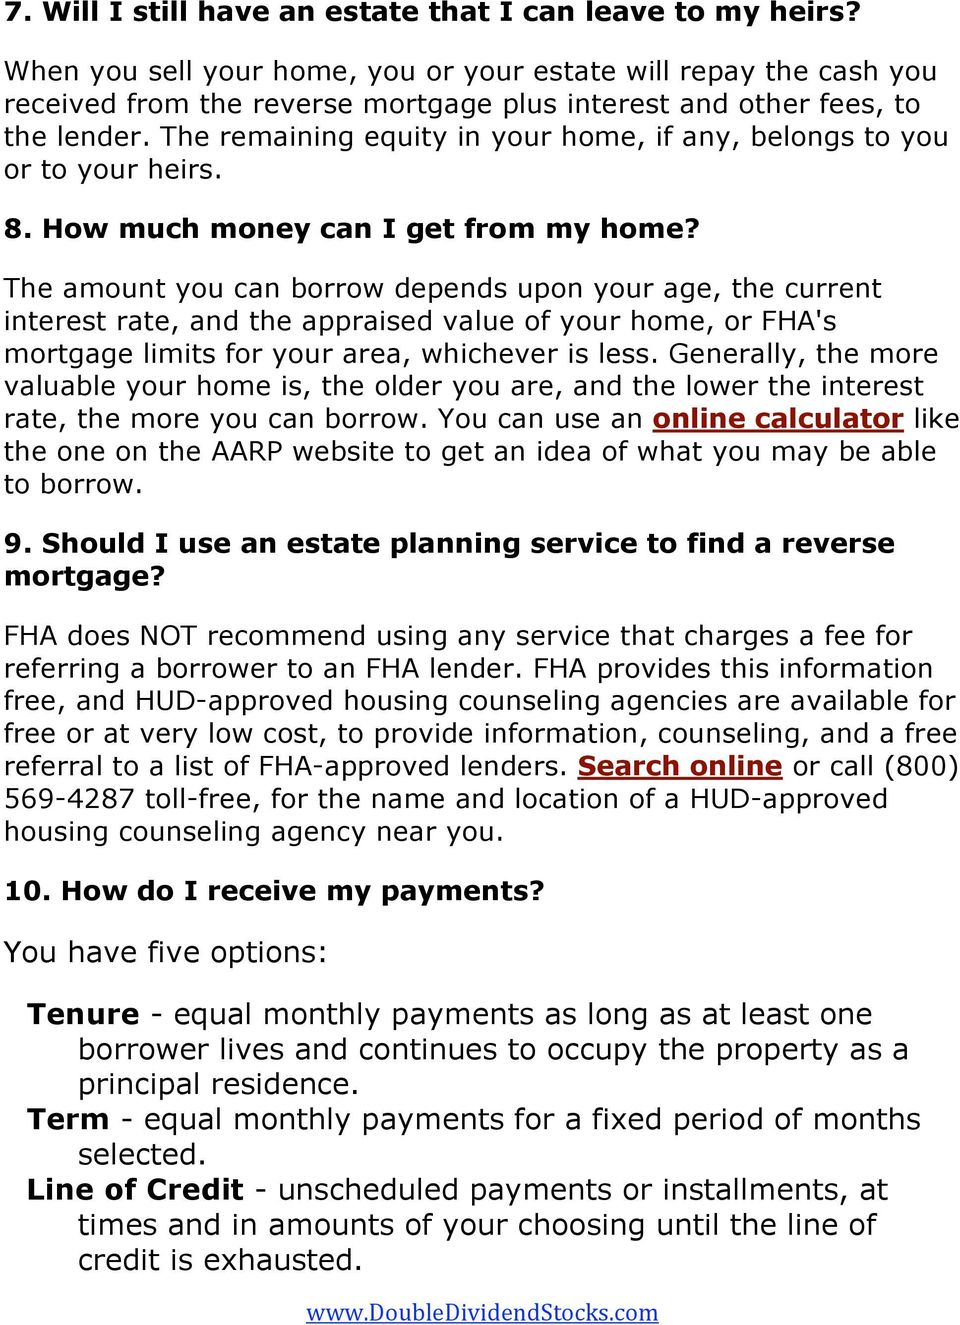 The remaining equity in your home, if any, belongs to you or to your heirs. 8. How much money can I get from my home?